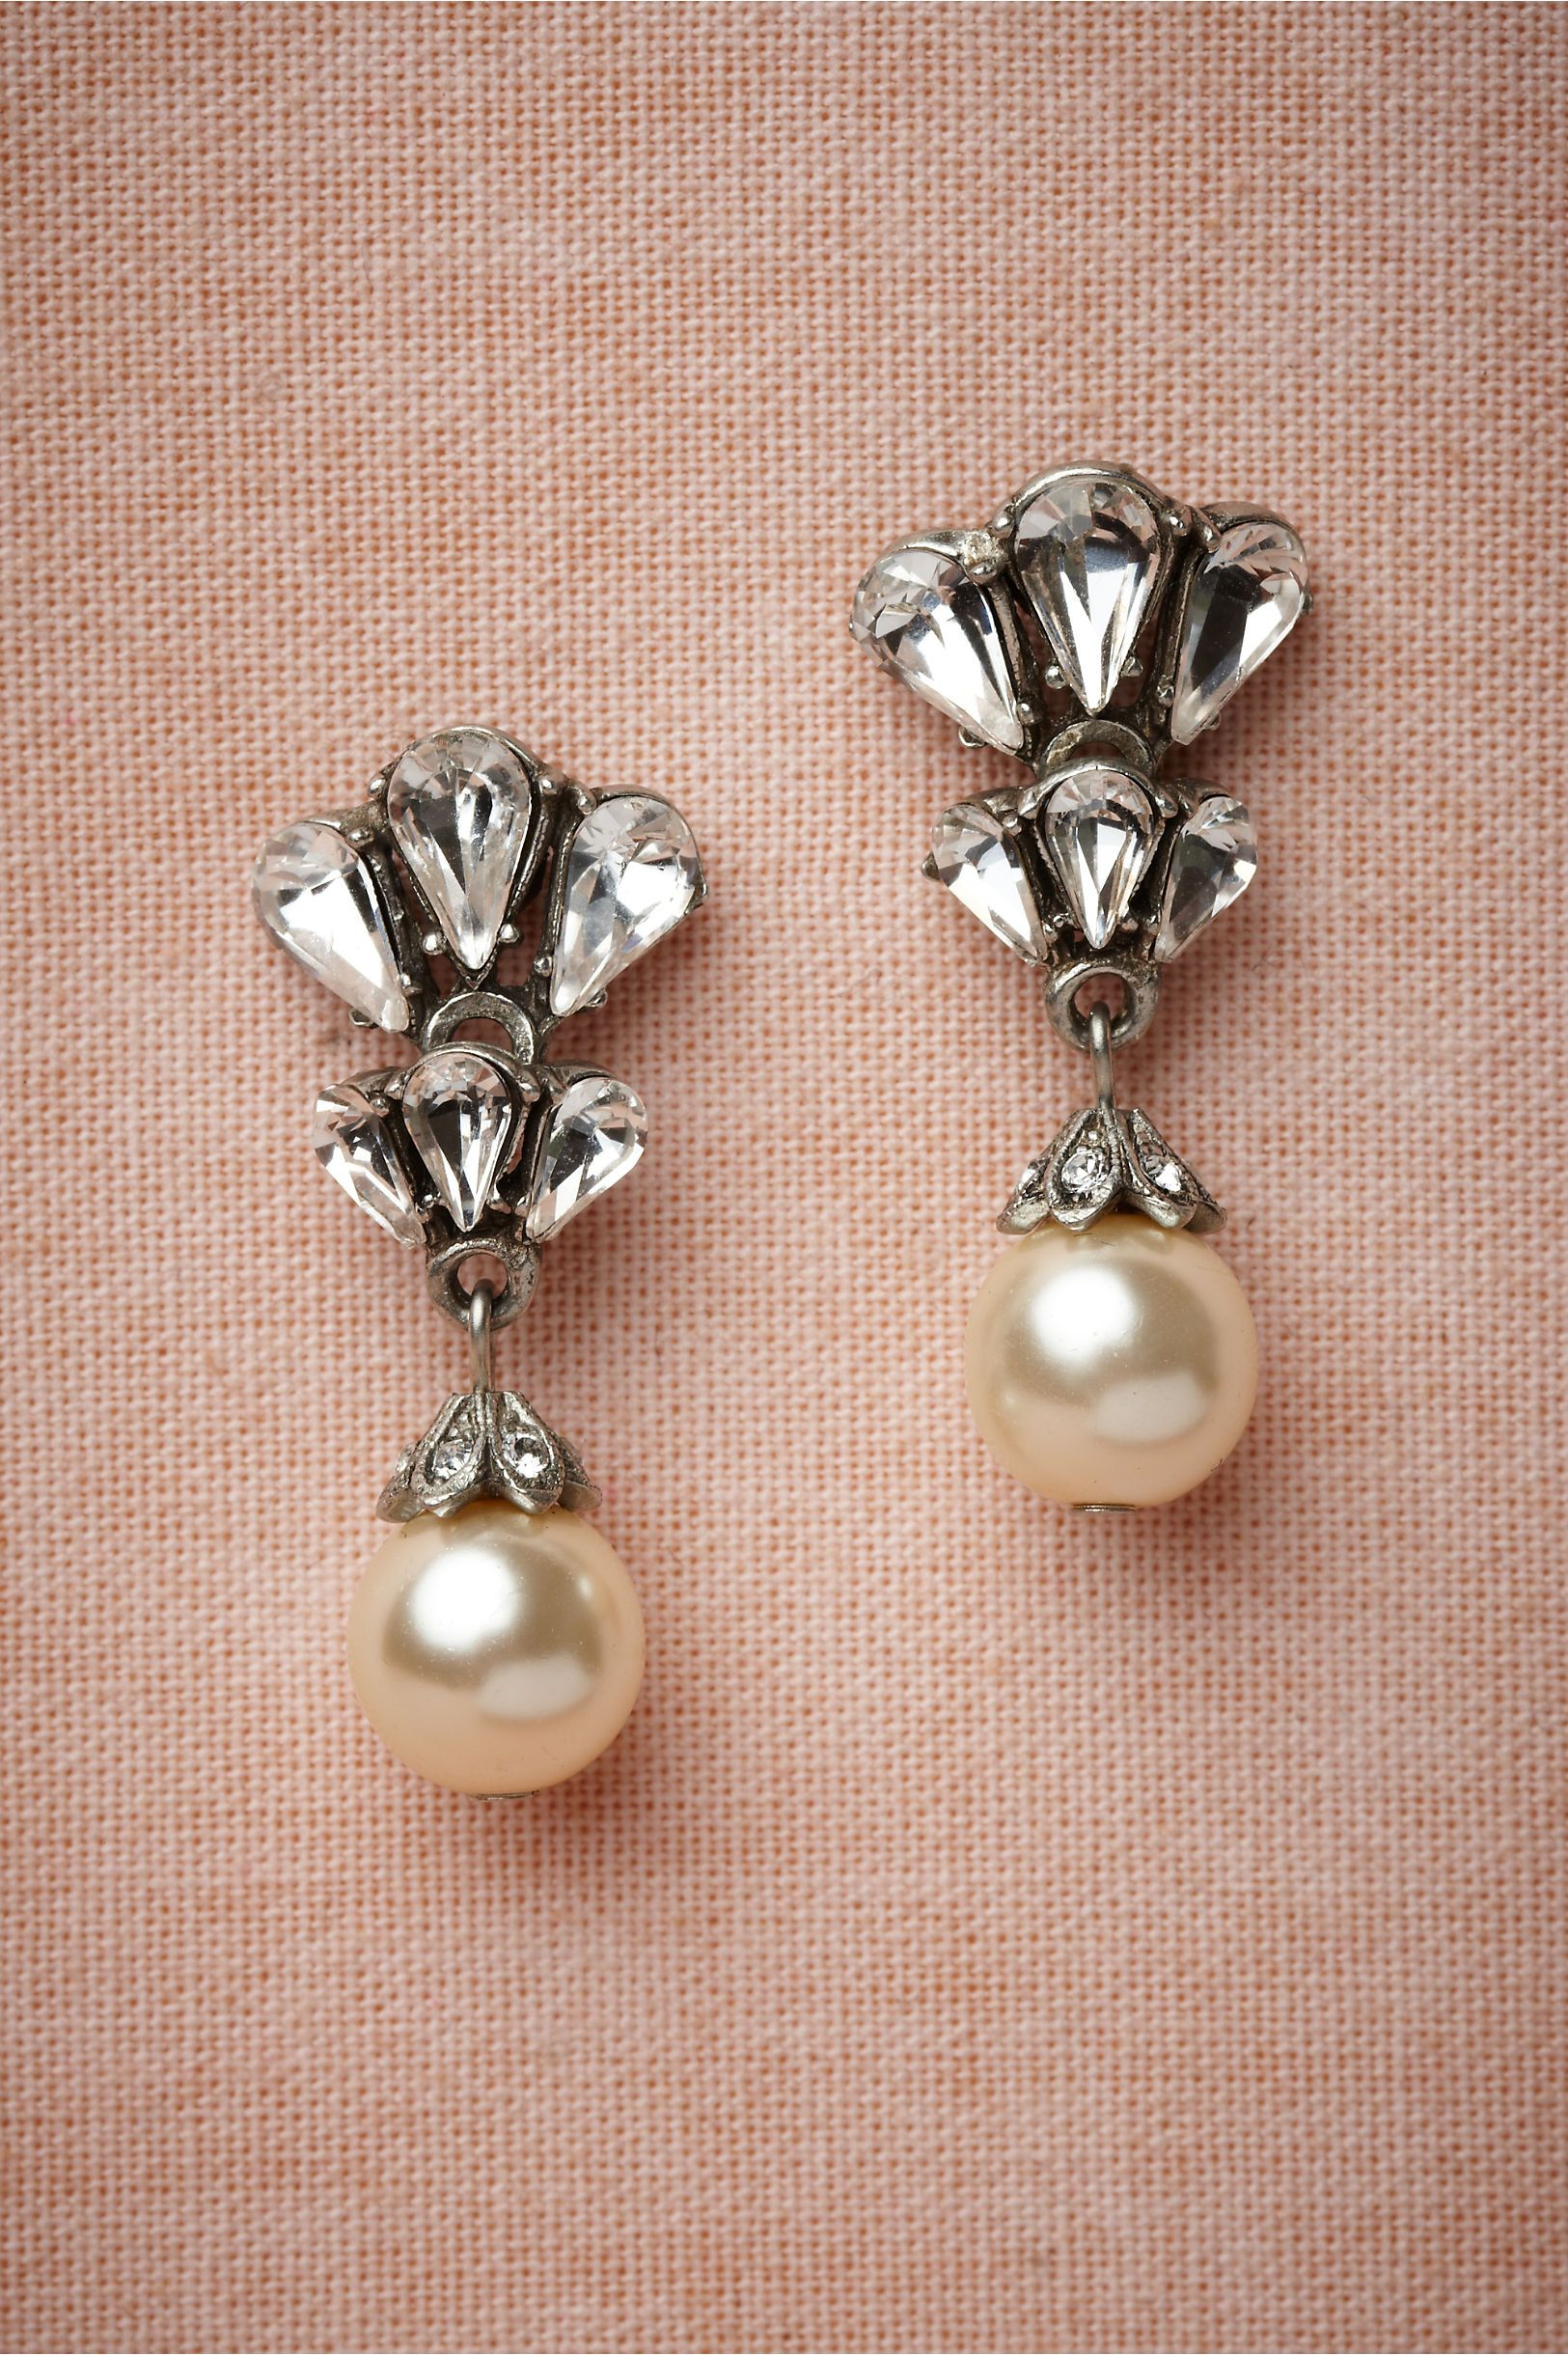 pearl jewelsmith button archive crafted in earrings freshwater single earring fine innovative hand jewelry style